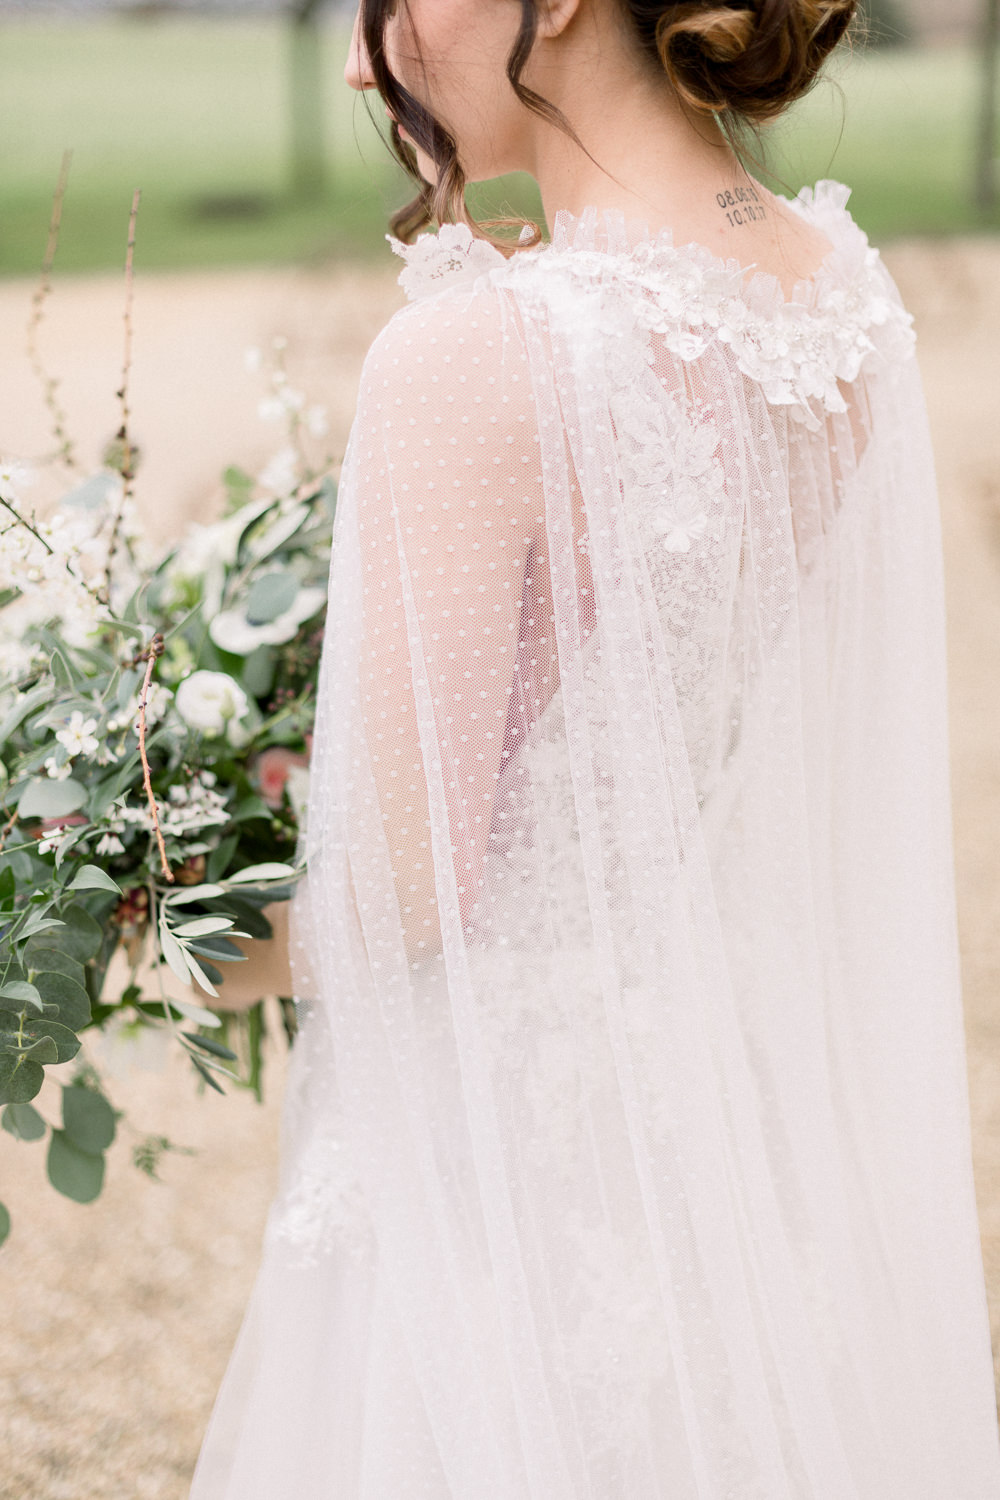 Dress Gown Bride Bridal Cape Veil Winter Blue Barn Wedding Ideas Joanna Briggs Photography